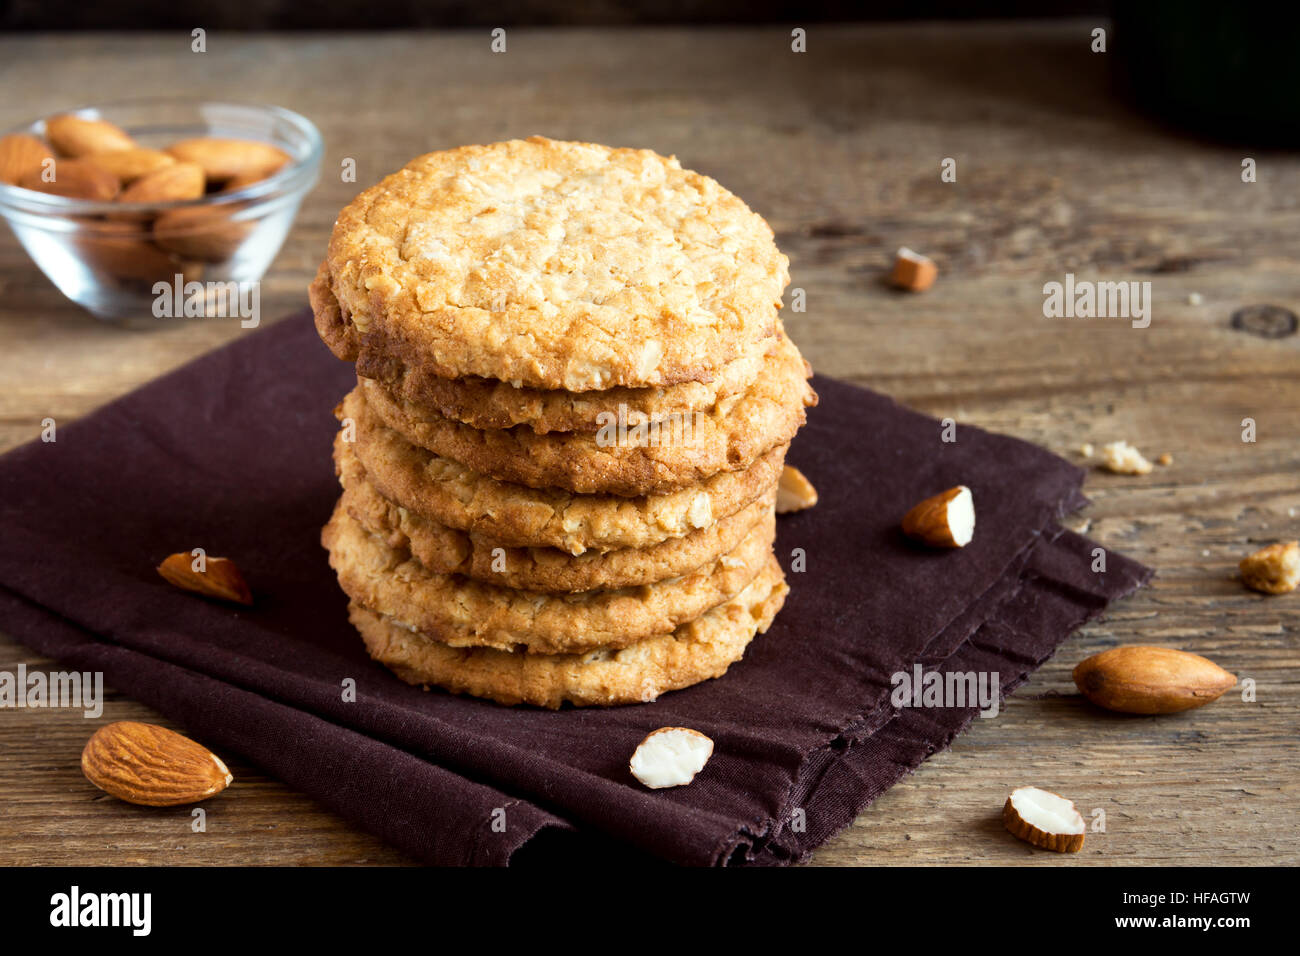 Homemade almond cookies on wooden table with copy space - healthy homemade vegan vegetarian pastry with almonds - Stock Image